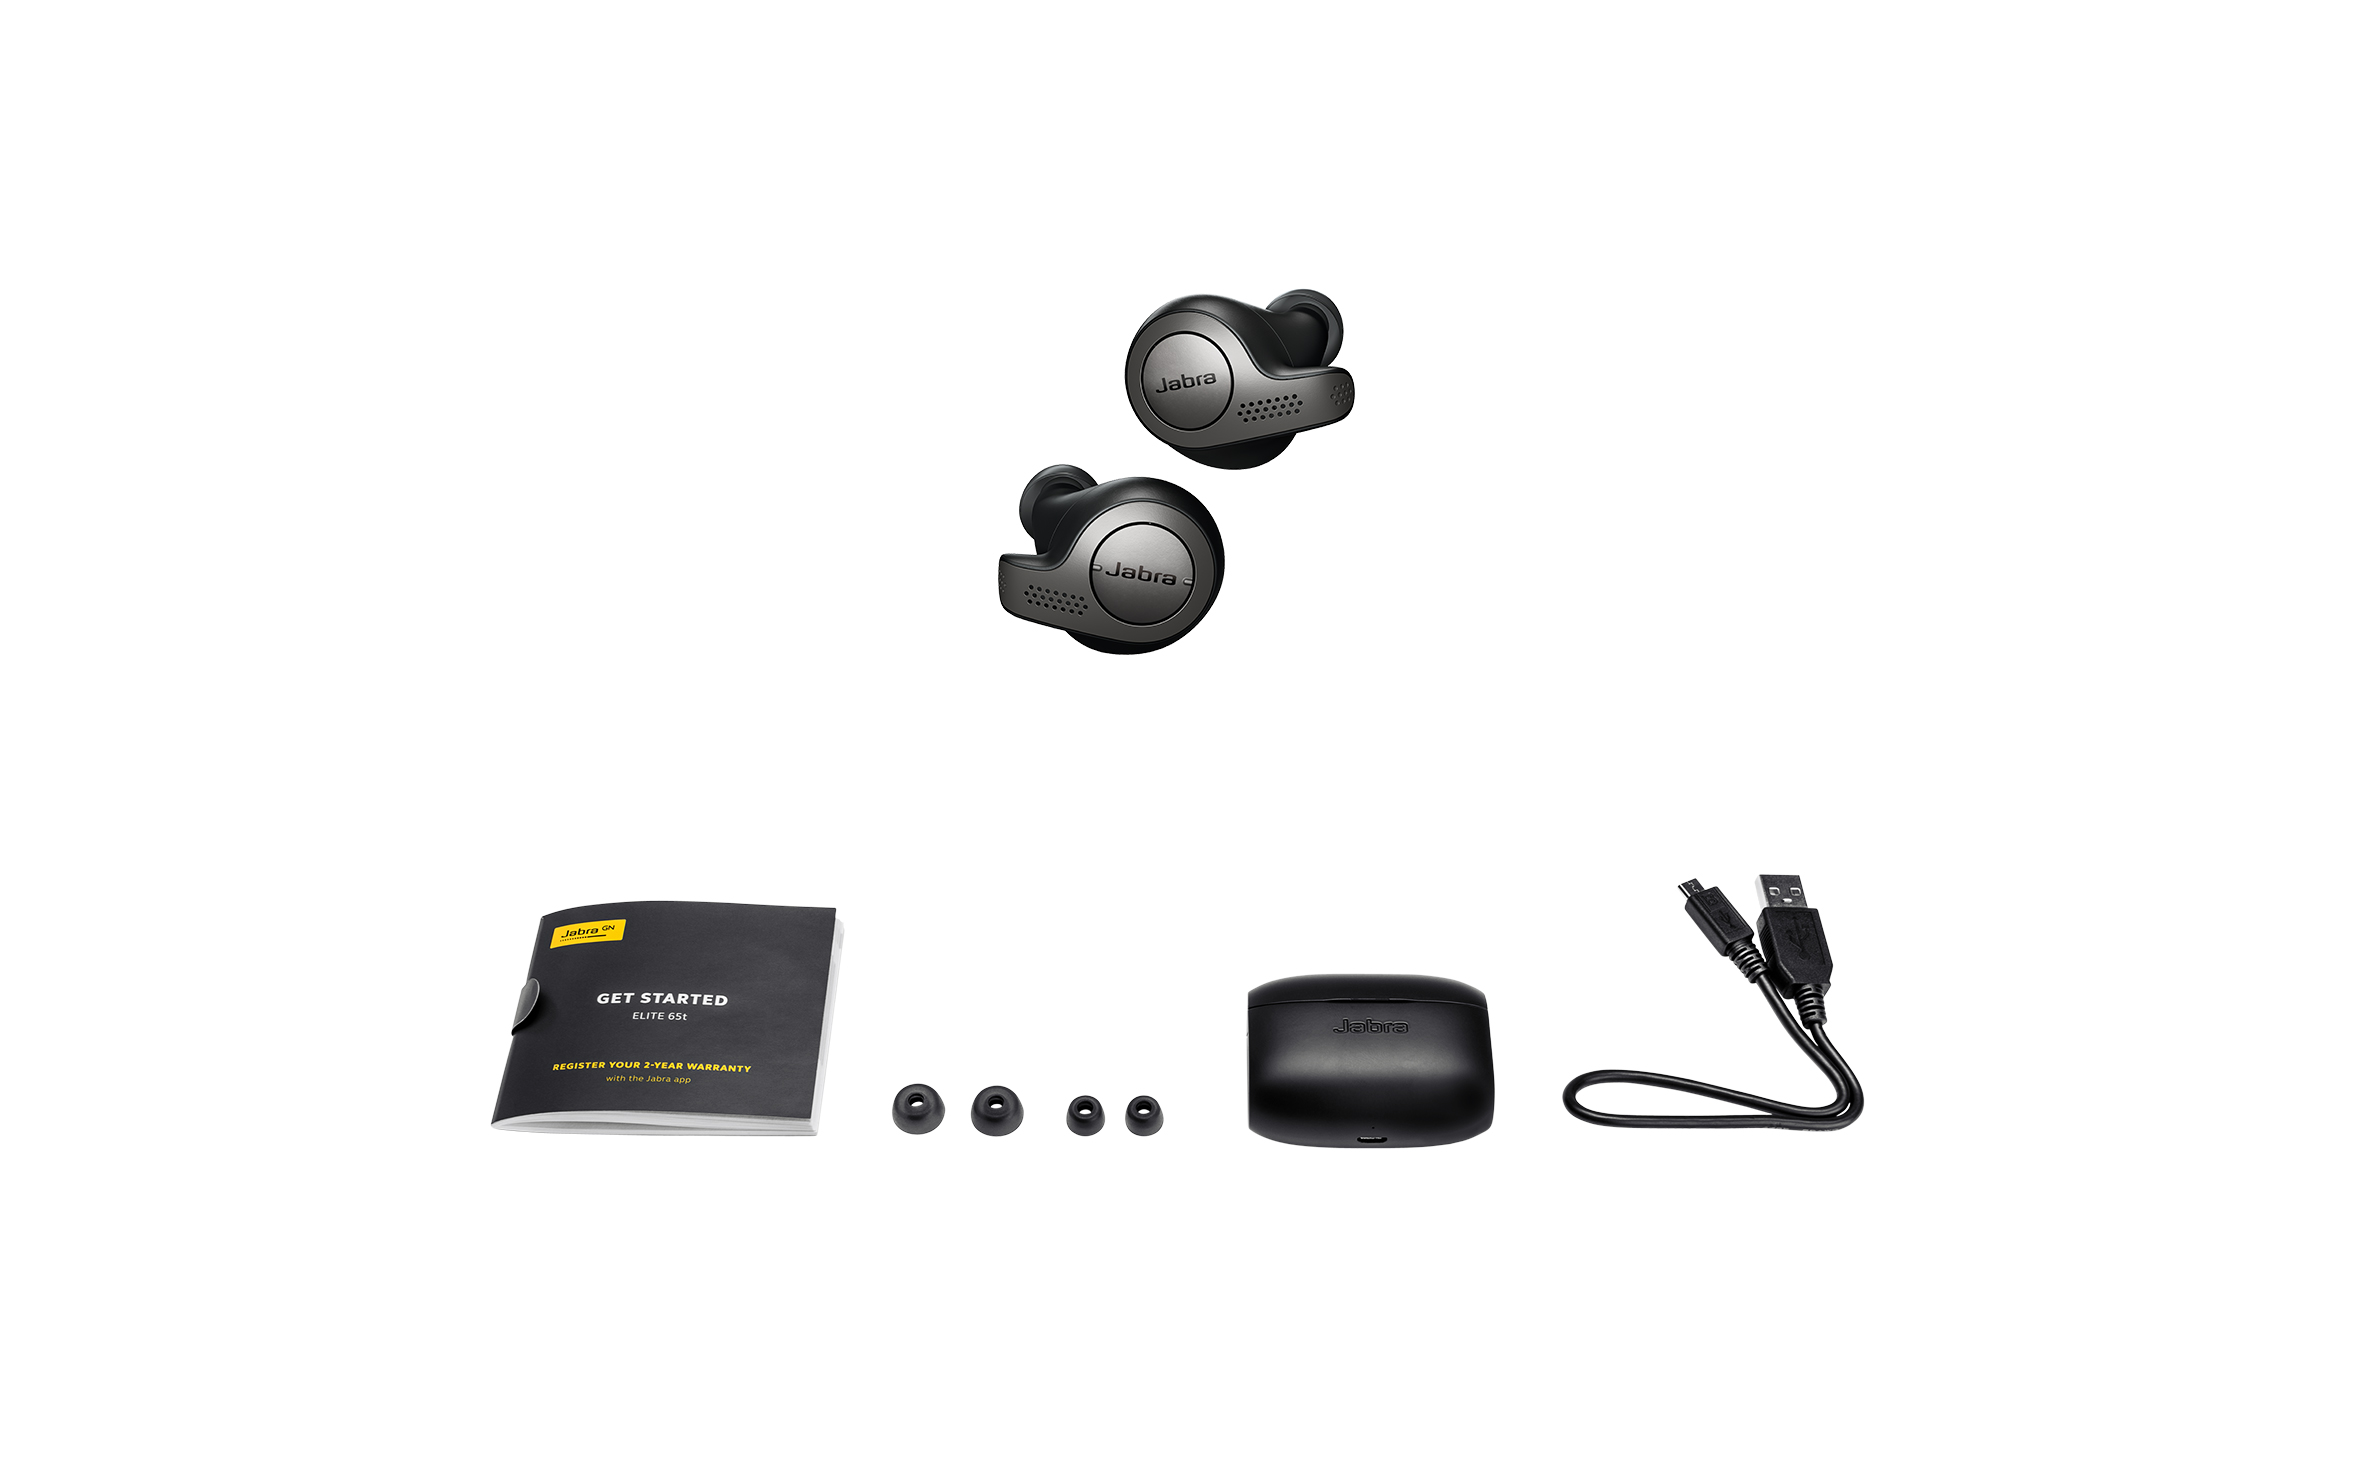 Jabra-Elite-65t-Alexa-Enabled-True-Wireless-Earbuds-with-Charging-Case-NEW thumbnail 8